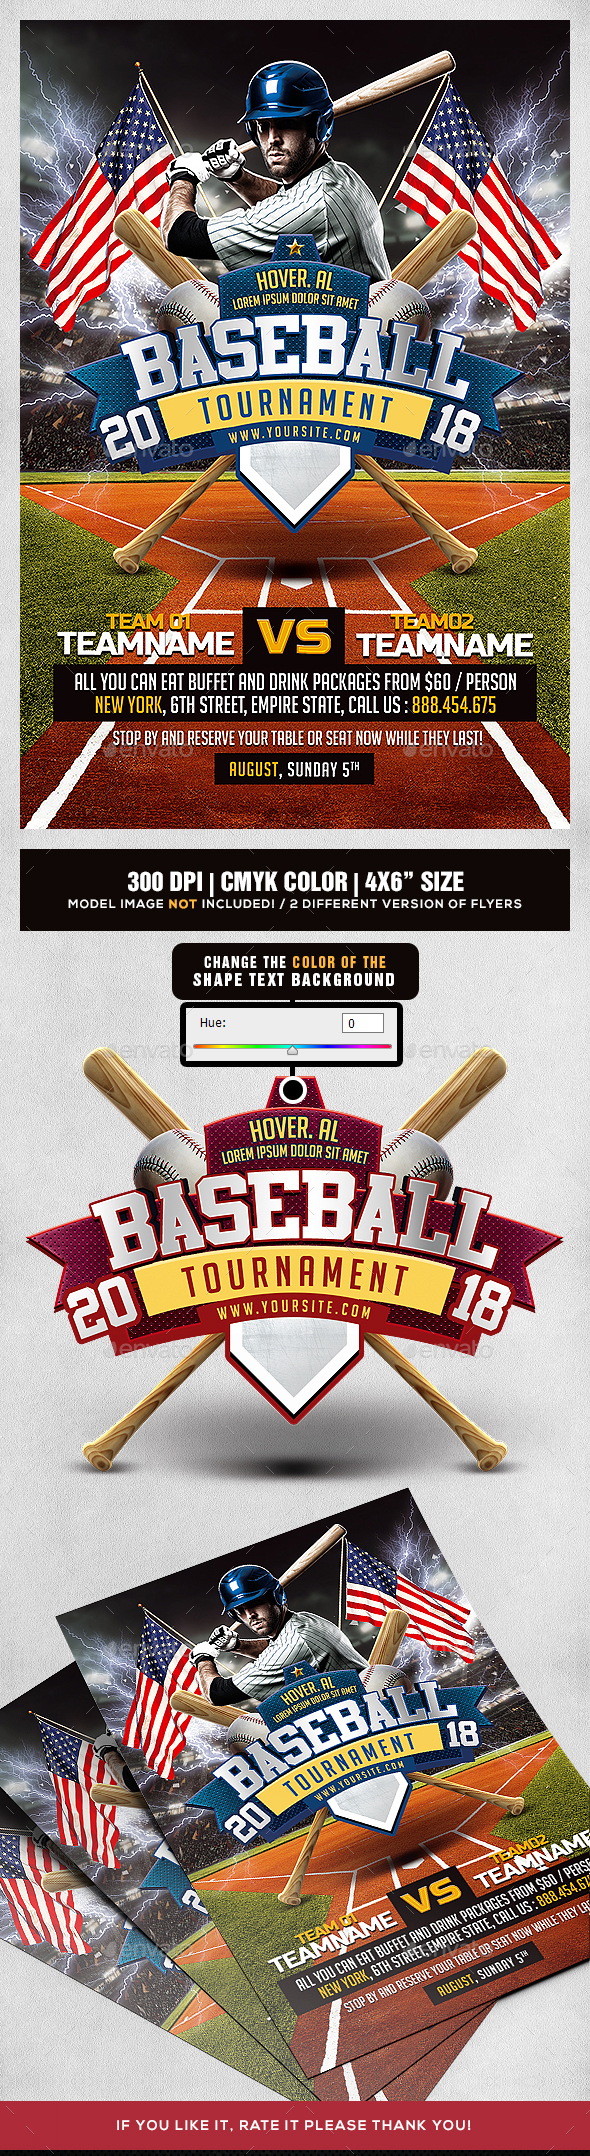 Baseball Tournament Flyer - Sports Events